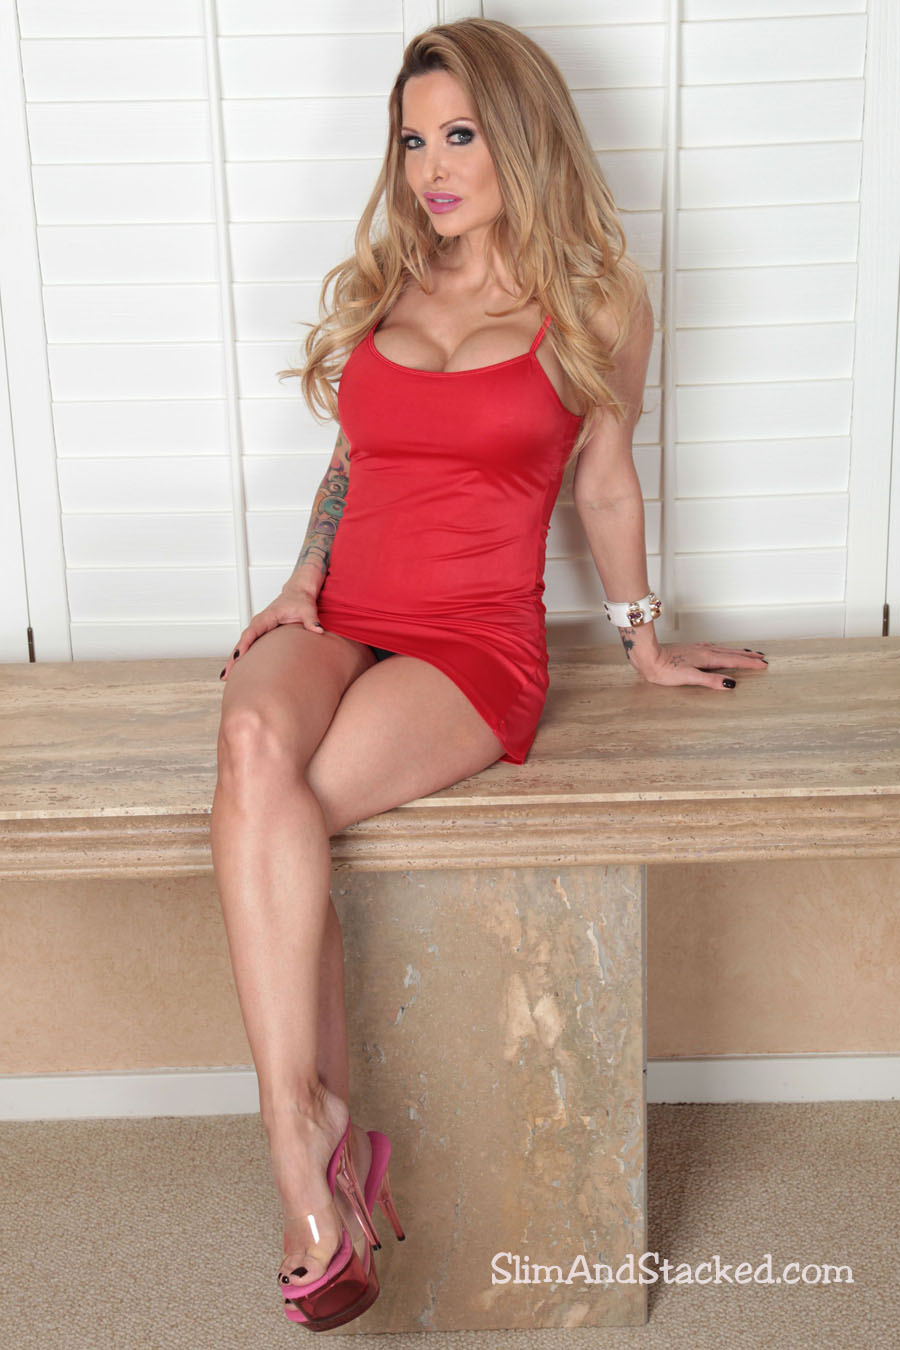 Helly has a burning sexuality and her short red dress really shows off her assets.  Things get even hotter as the dress disappears.  Own the entire 3000 pixel set by contacting dezertimagez@gmail.com for pricing.